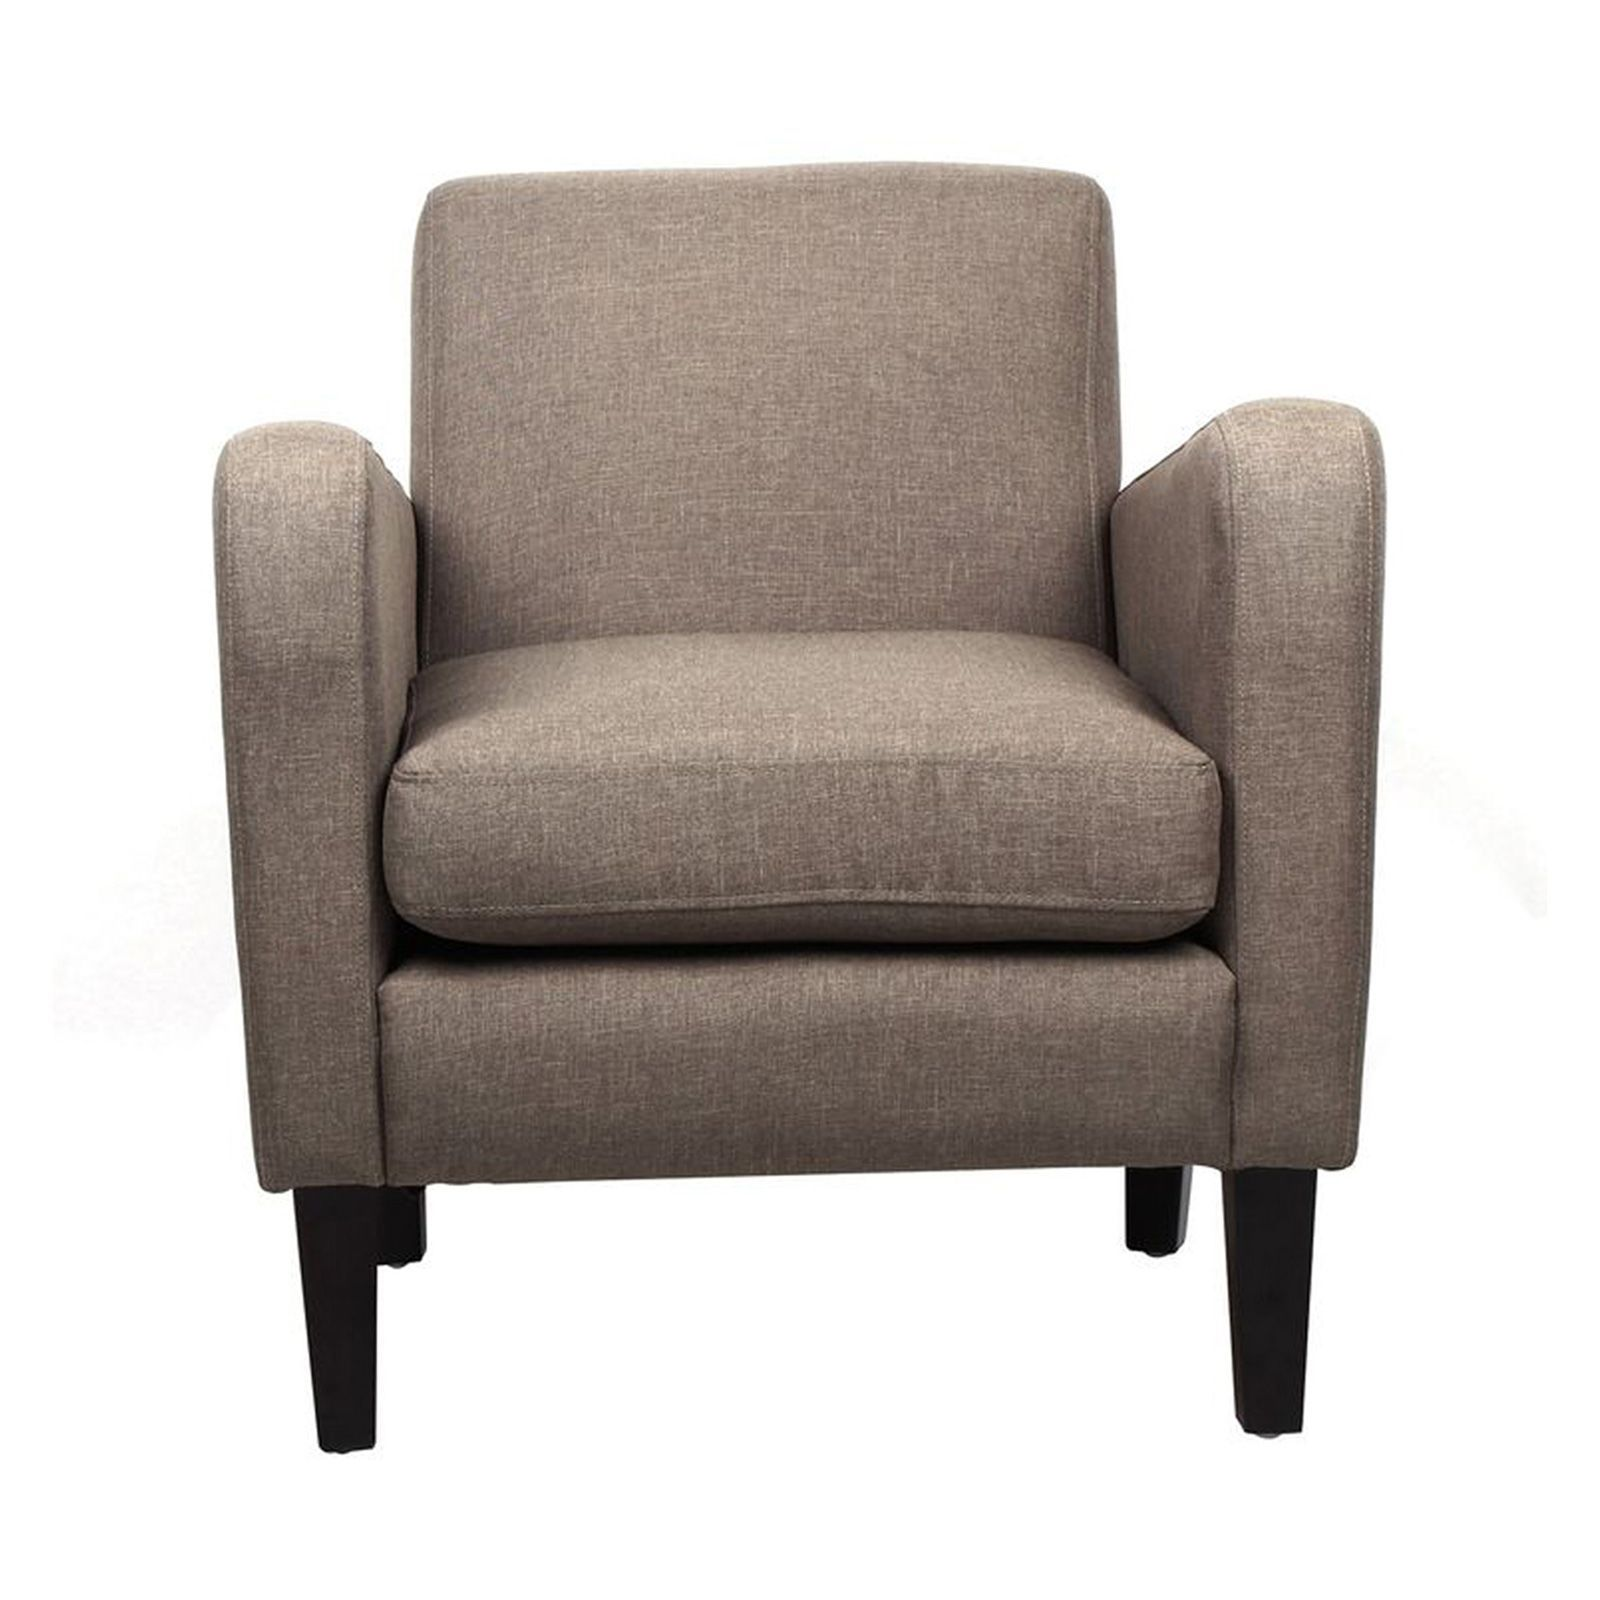 Potiron winston fauteuil taupe brandalley - Fauteuil potiron soldes ...